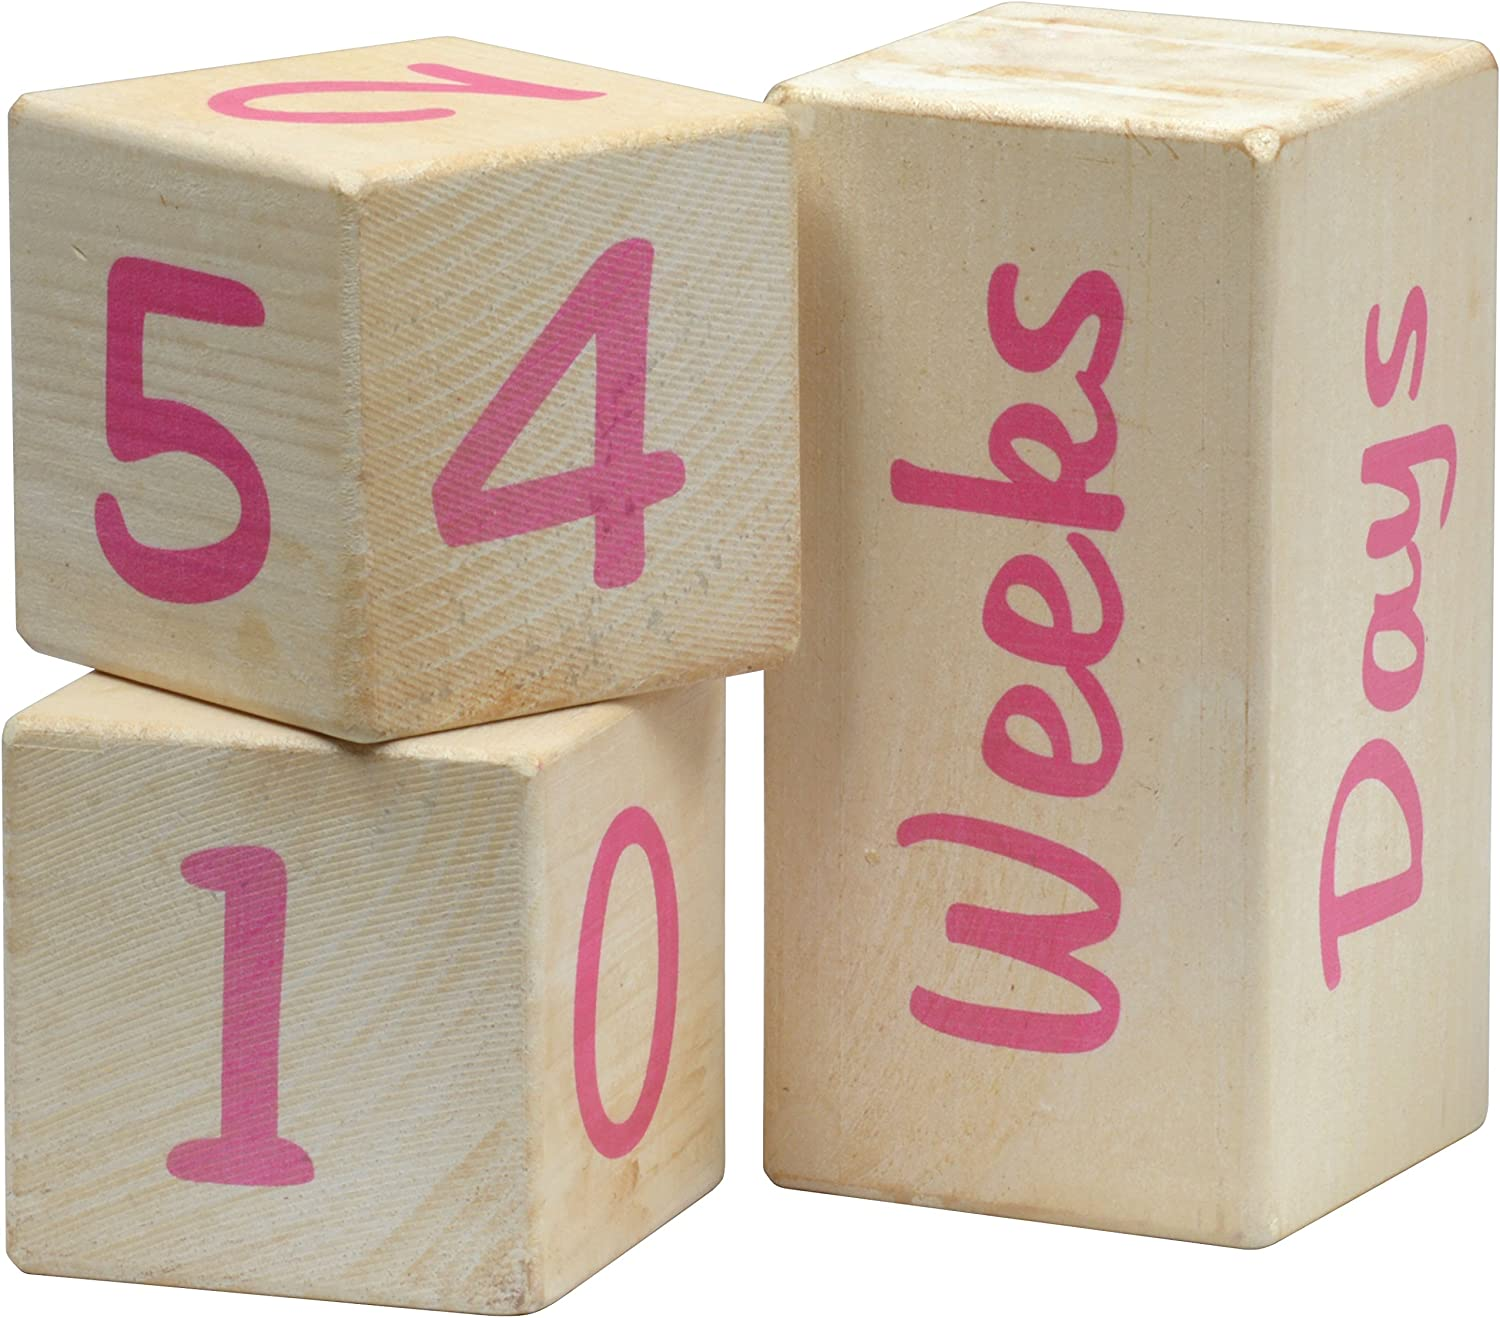 Portrait Prop Age Blocks safety - Made USA Pink Special price for a limited time in